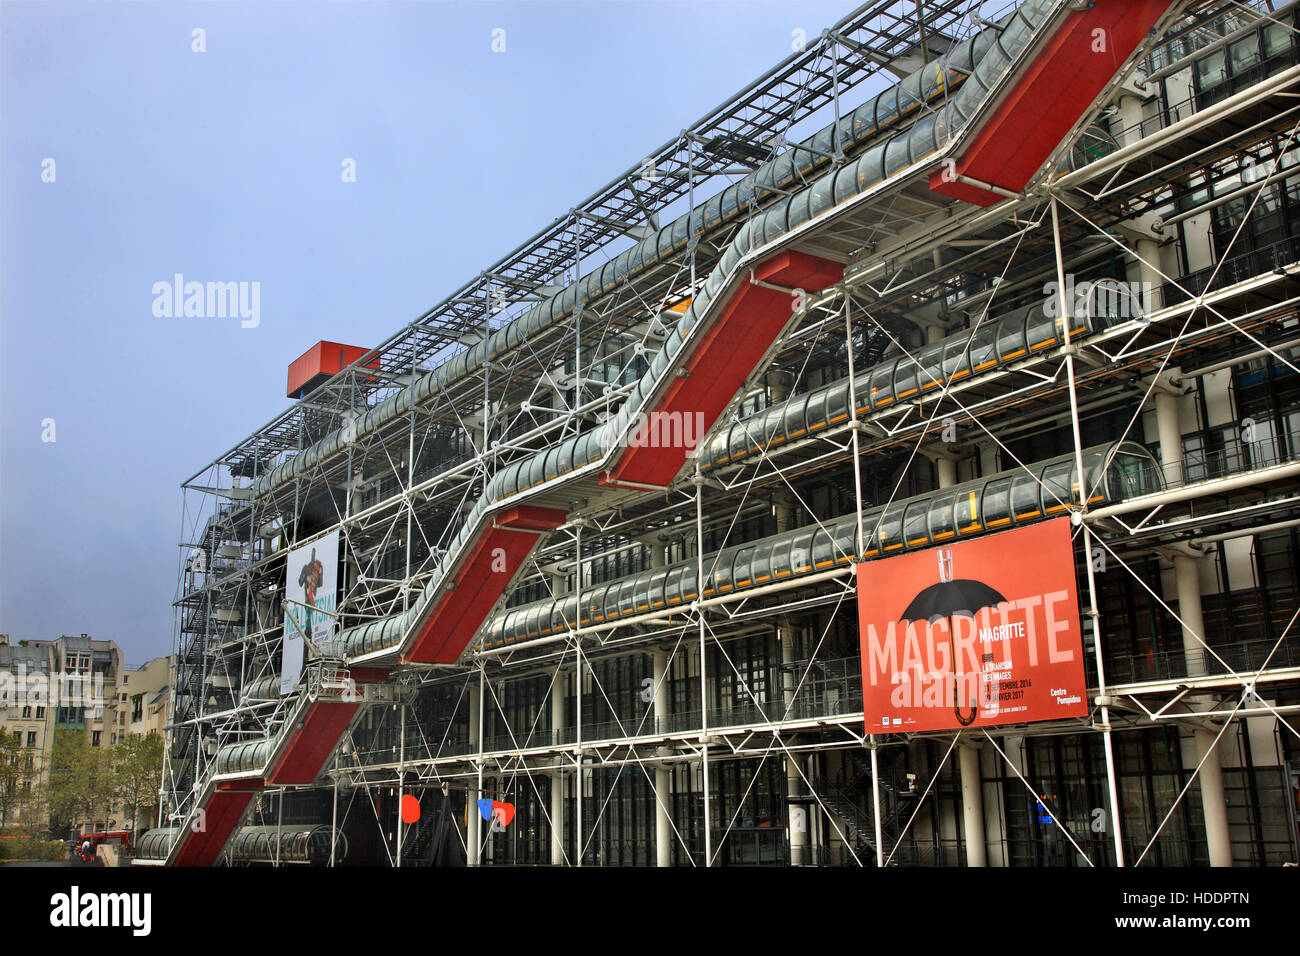 Centre Georges Pompidou, a complex building in the Beaubourg area of the 4th arrondissement of Paris, France. - Stock Image